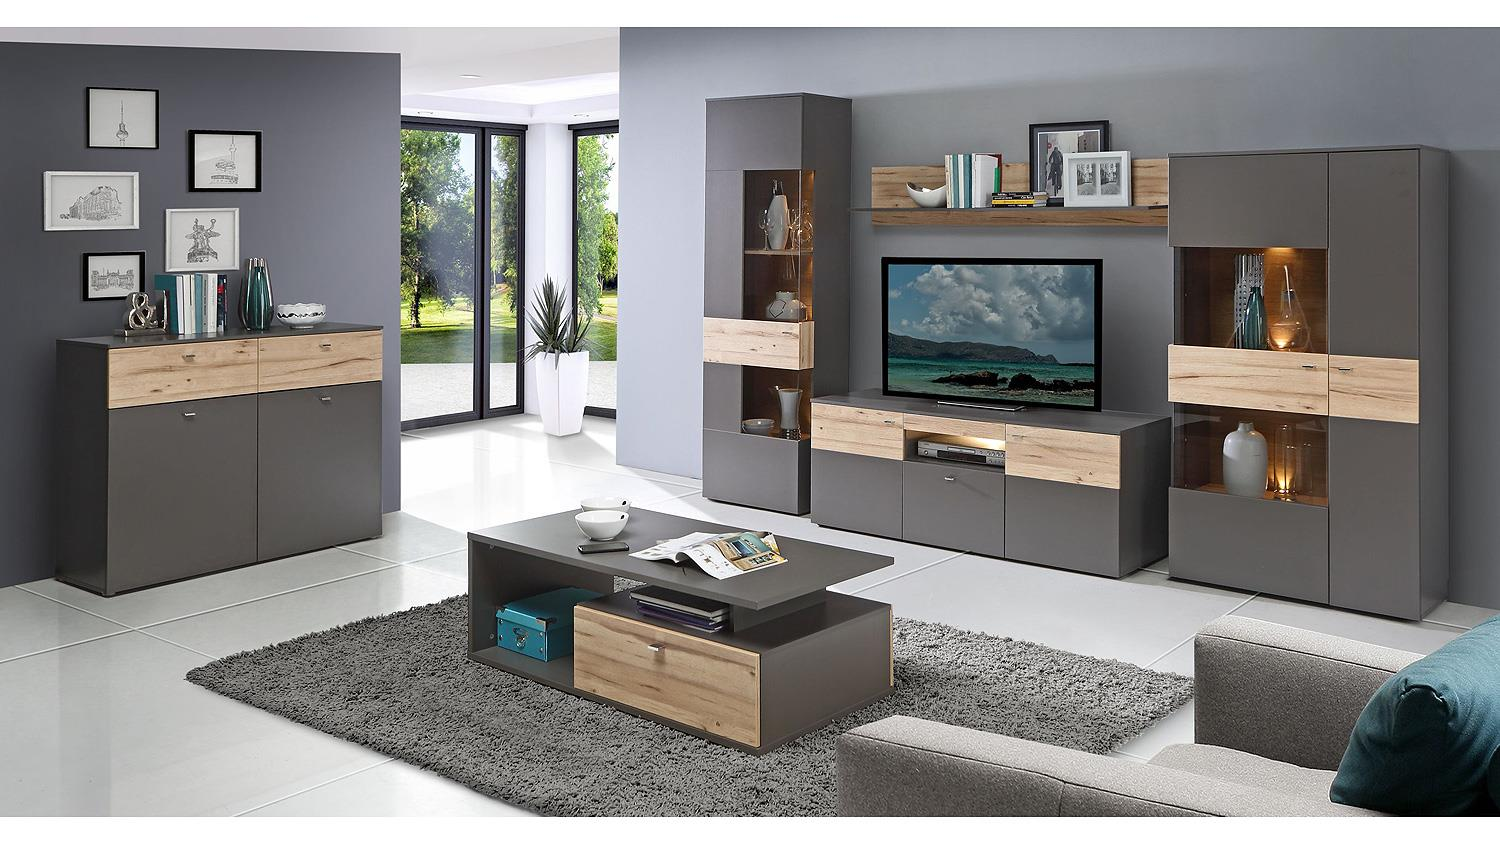 couchtisch como beistelltisch tisch uni wolfram grau und planked eiche. Black Bedroom Furniture Sets. Home Design Ideas